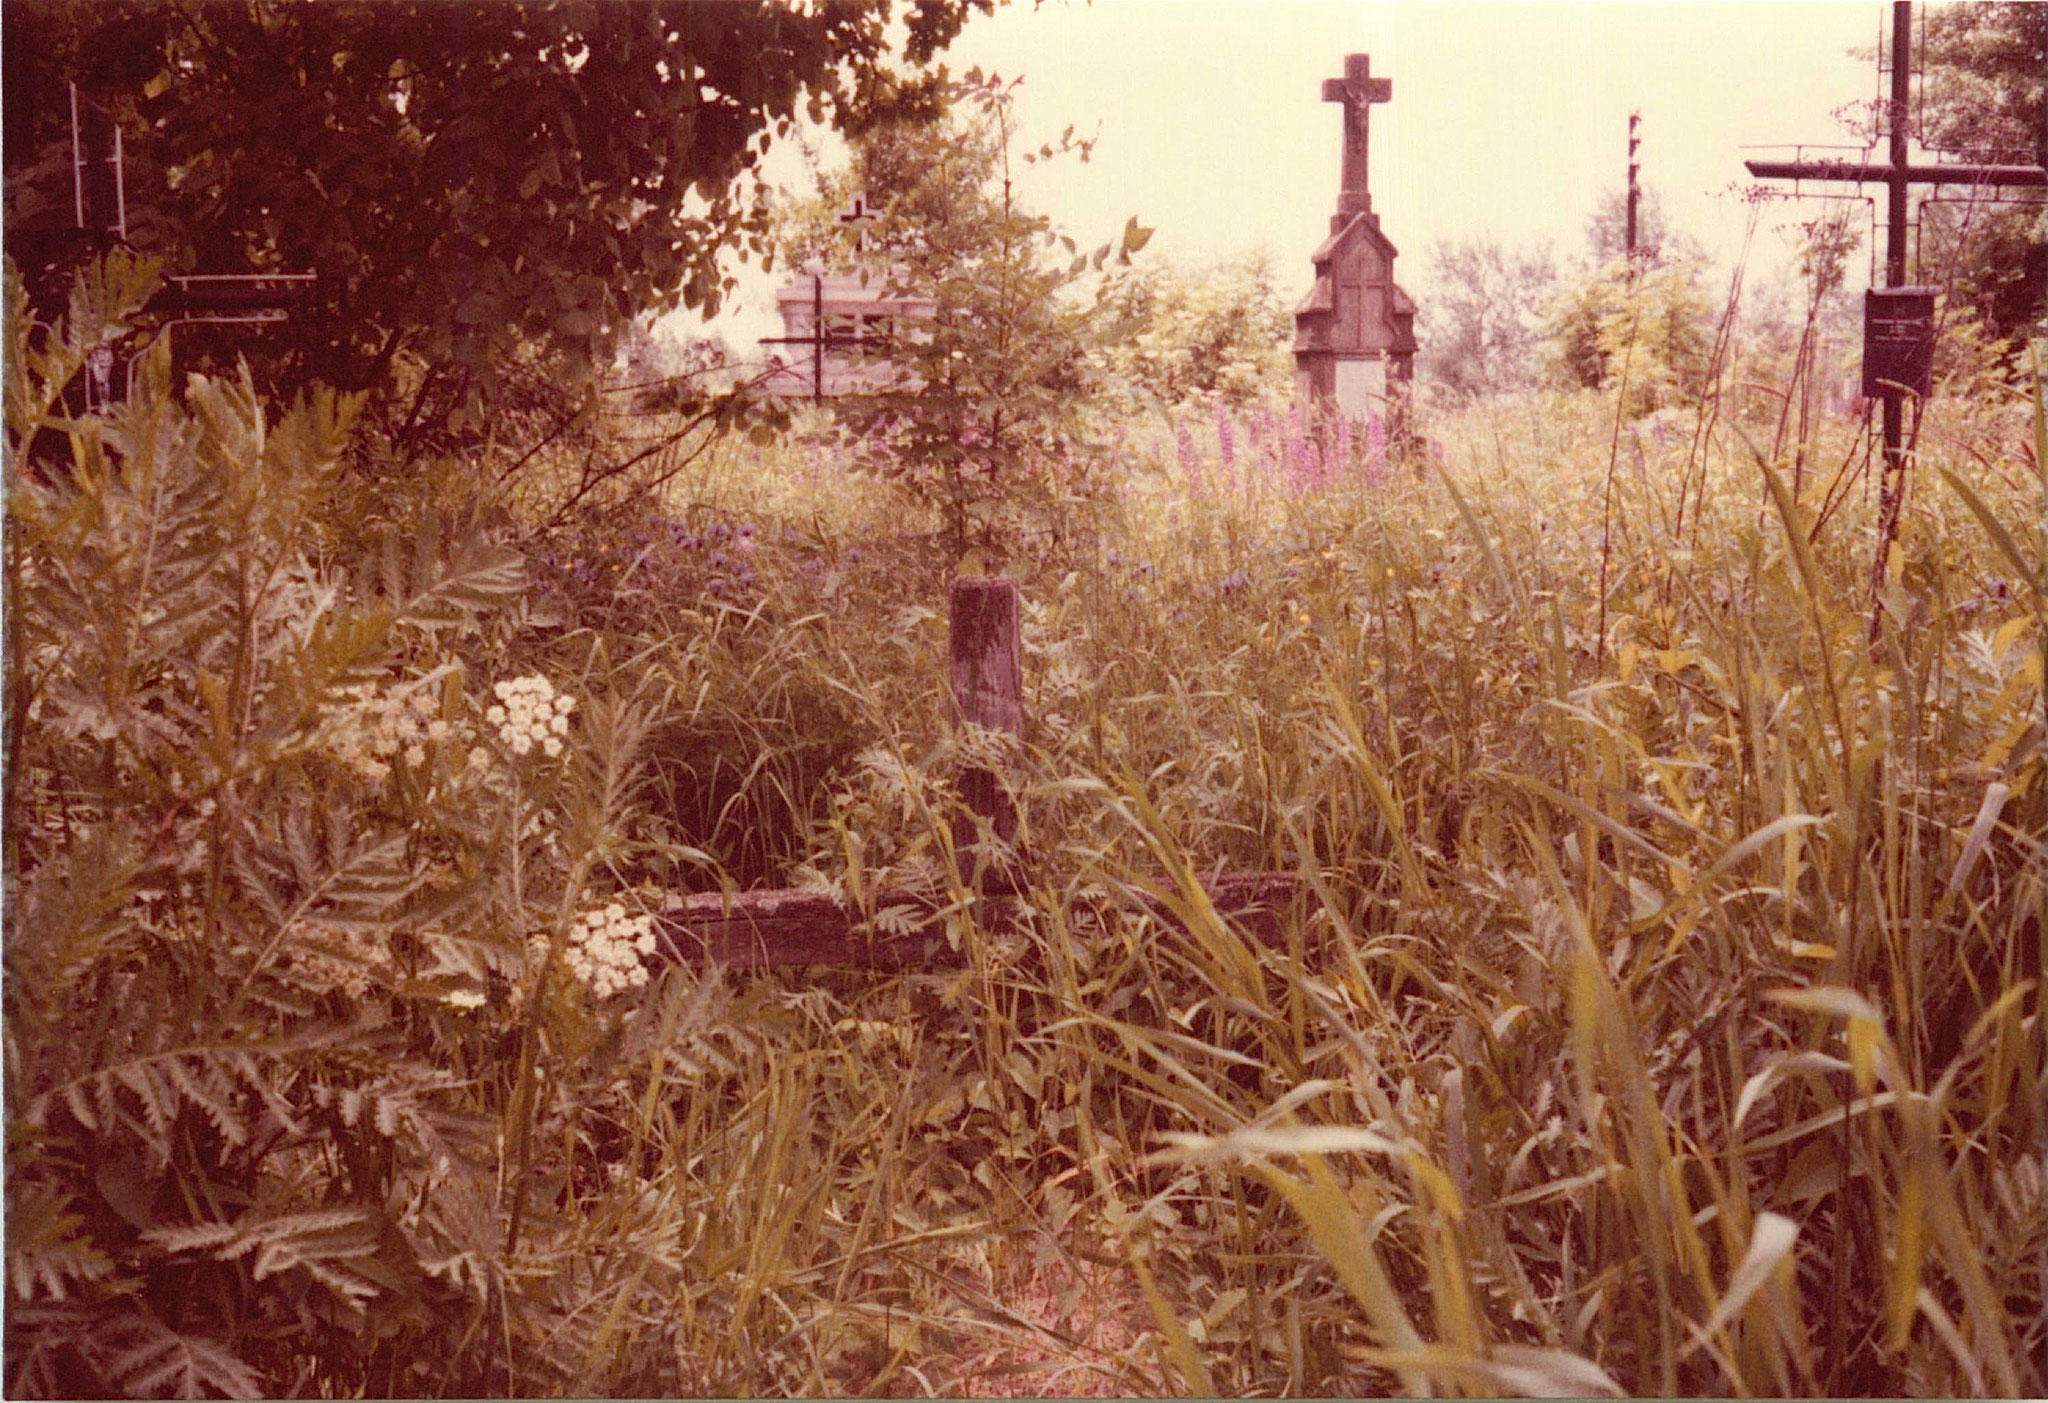 Paul Bogden's parents' grave, cemetery near Mielec, Poland, 1978